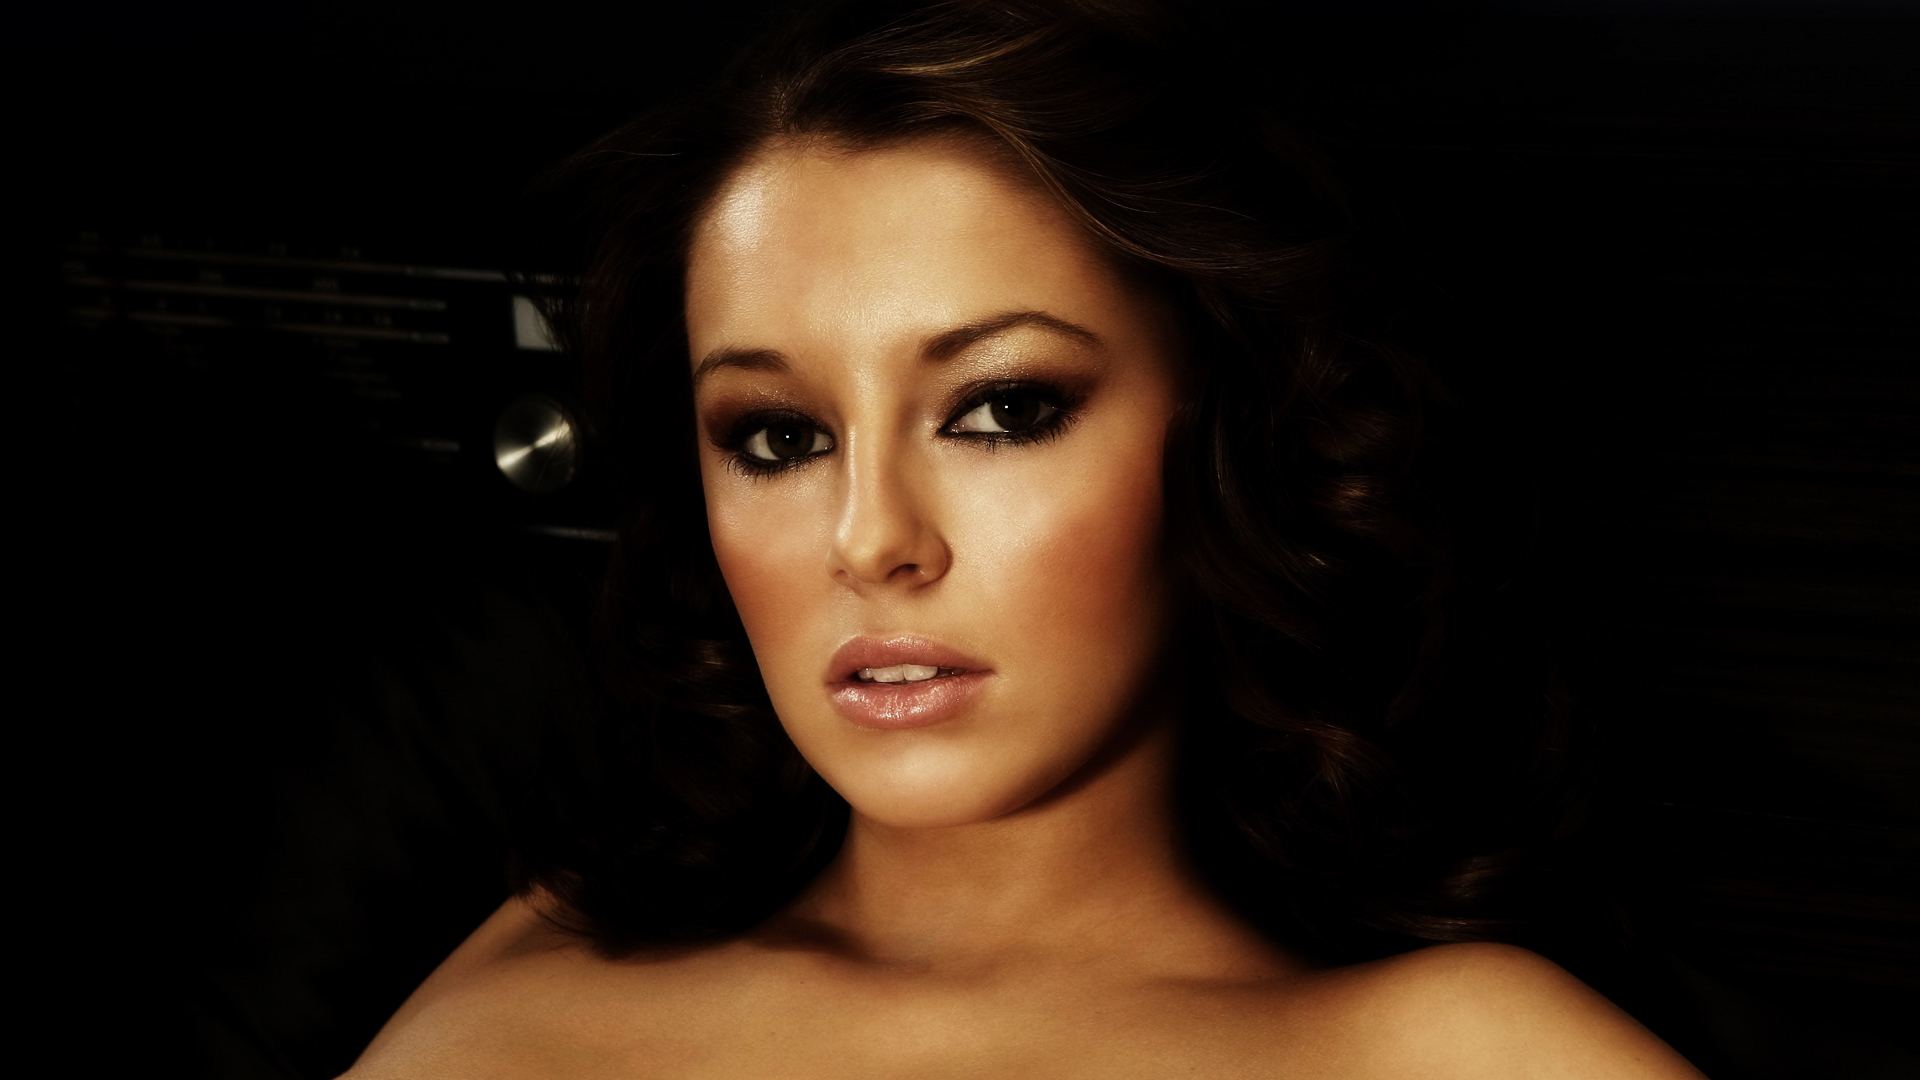 Keeley Hazell HD Wallpaper Background Image 1920x1080 ID 1920x1080